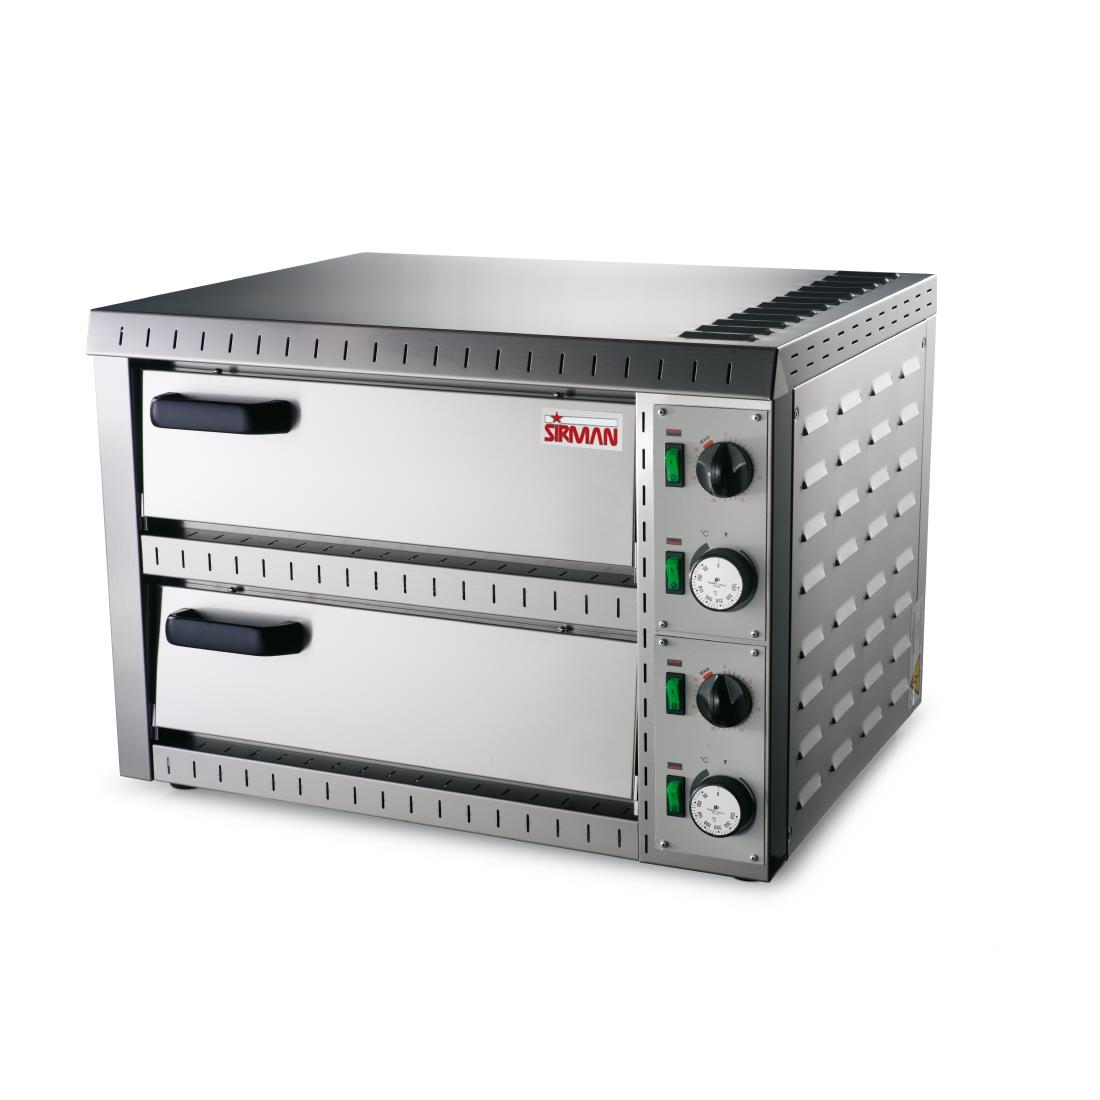 Sirman Stromboli Double Deck Pizza Oven - GK059 - Buy Online at Nisbets